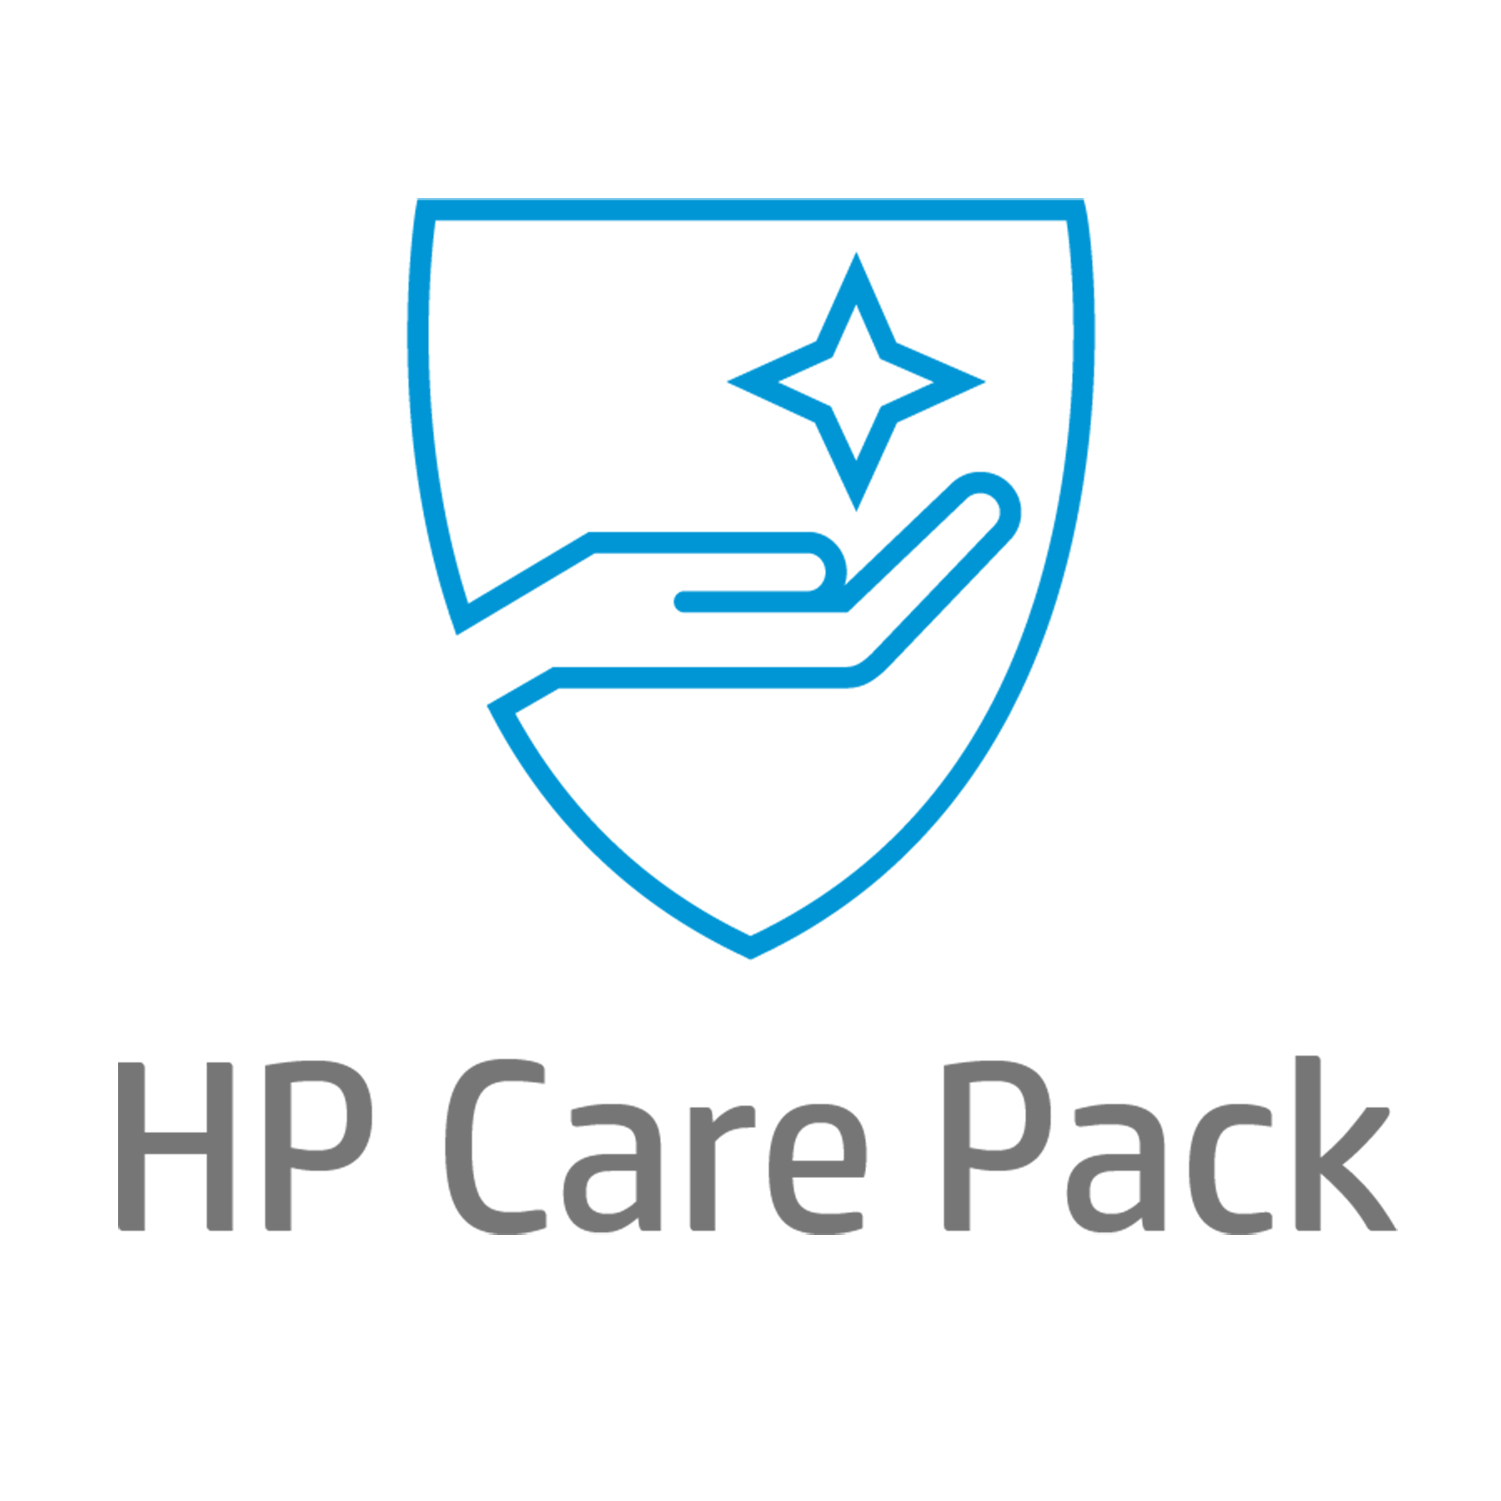 HP 5 year Next Business Day Onsite Hardware Support w/Travel/ADP-G2 for Notebooks